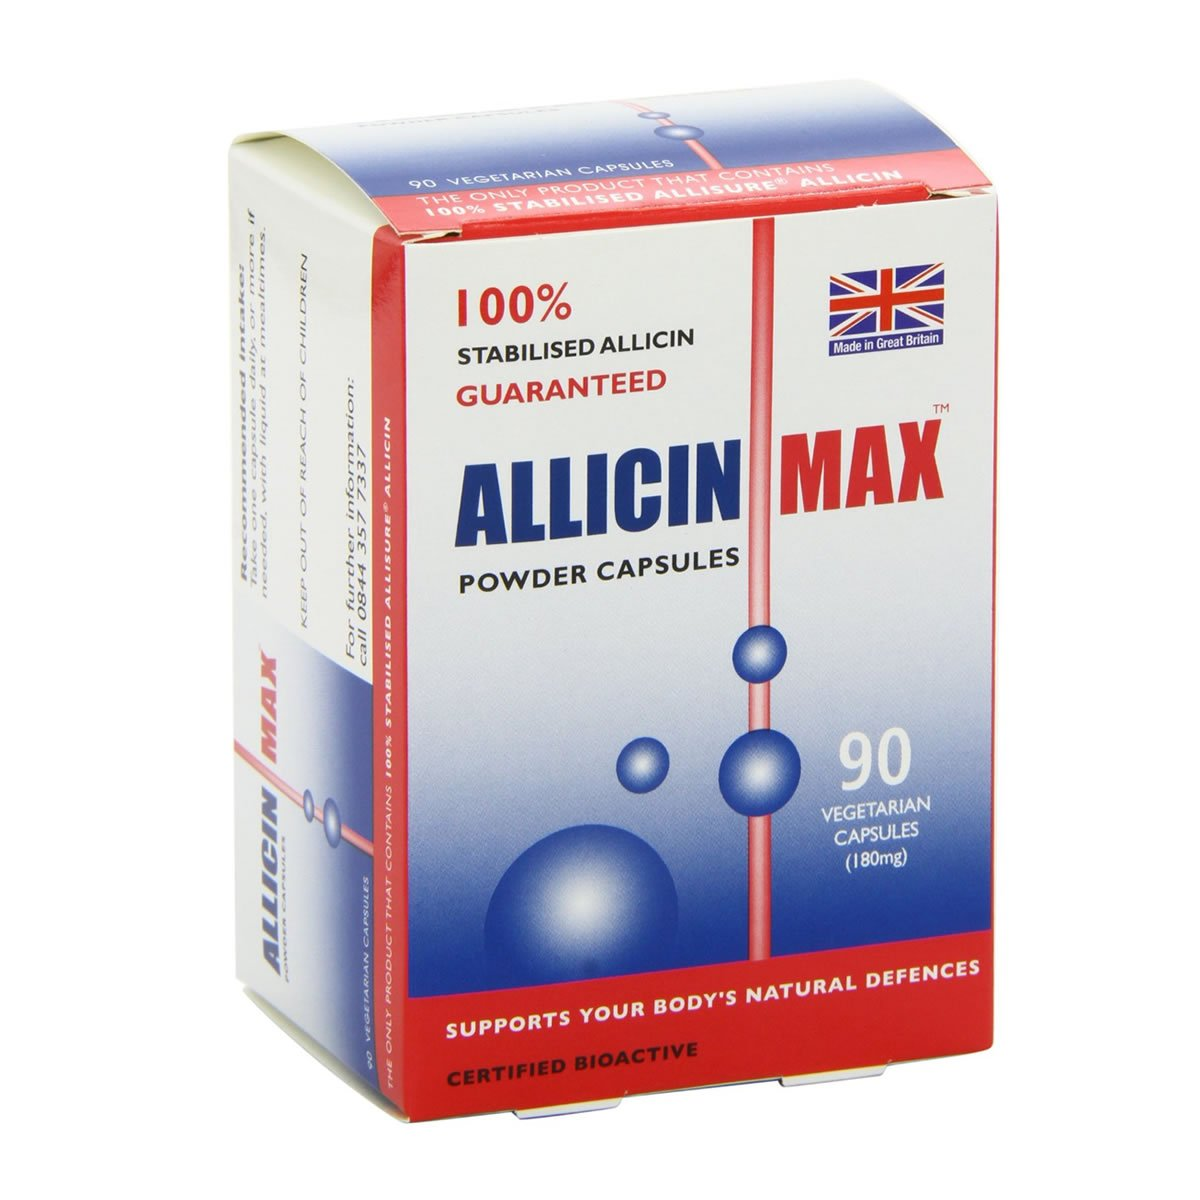 (3 PACK) - Allicin Max - Allicin Max | 90's | 3 PACK BUNDLE